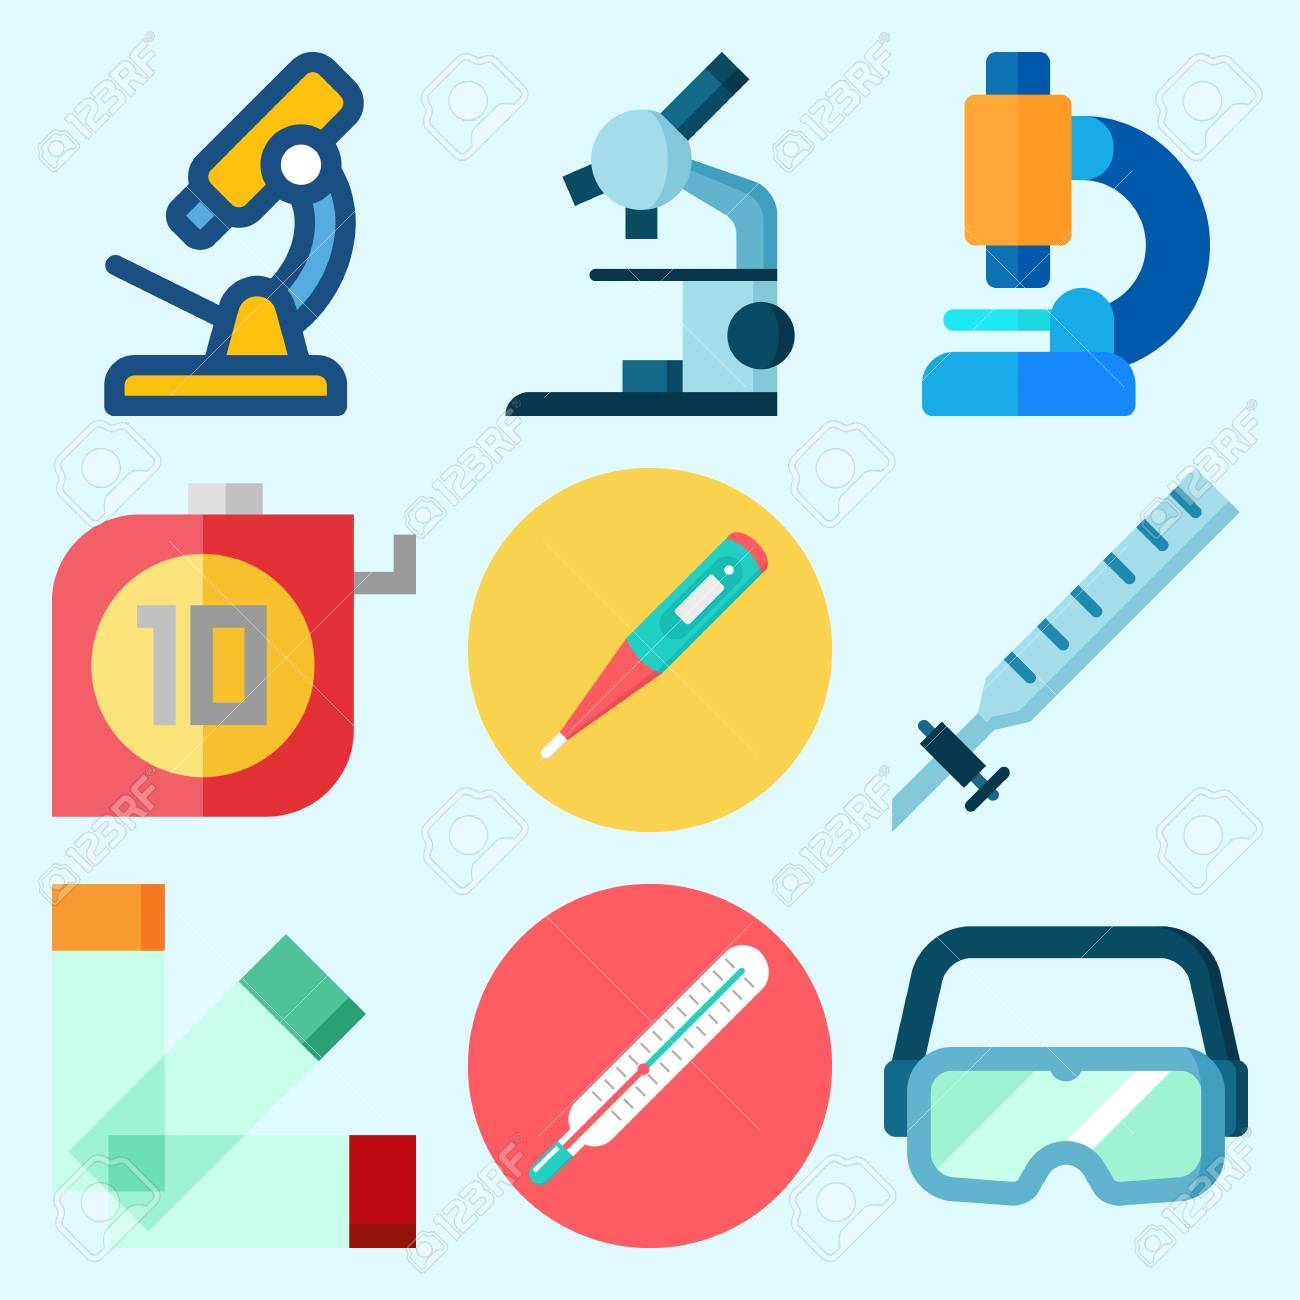 Thermometer Laboratory Apparatus Icons Set About Laboratory With Secure Glasses Thermometer